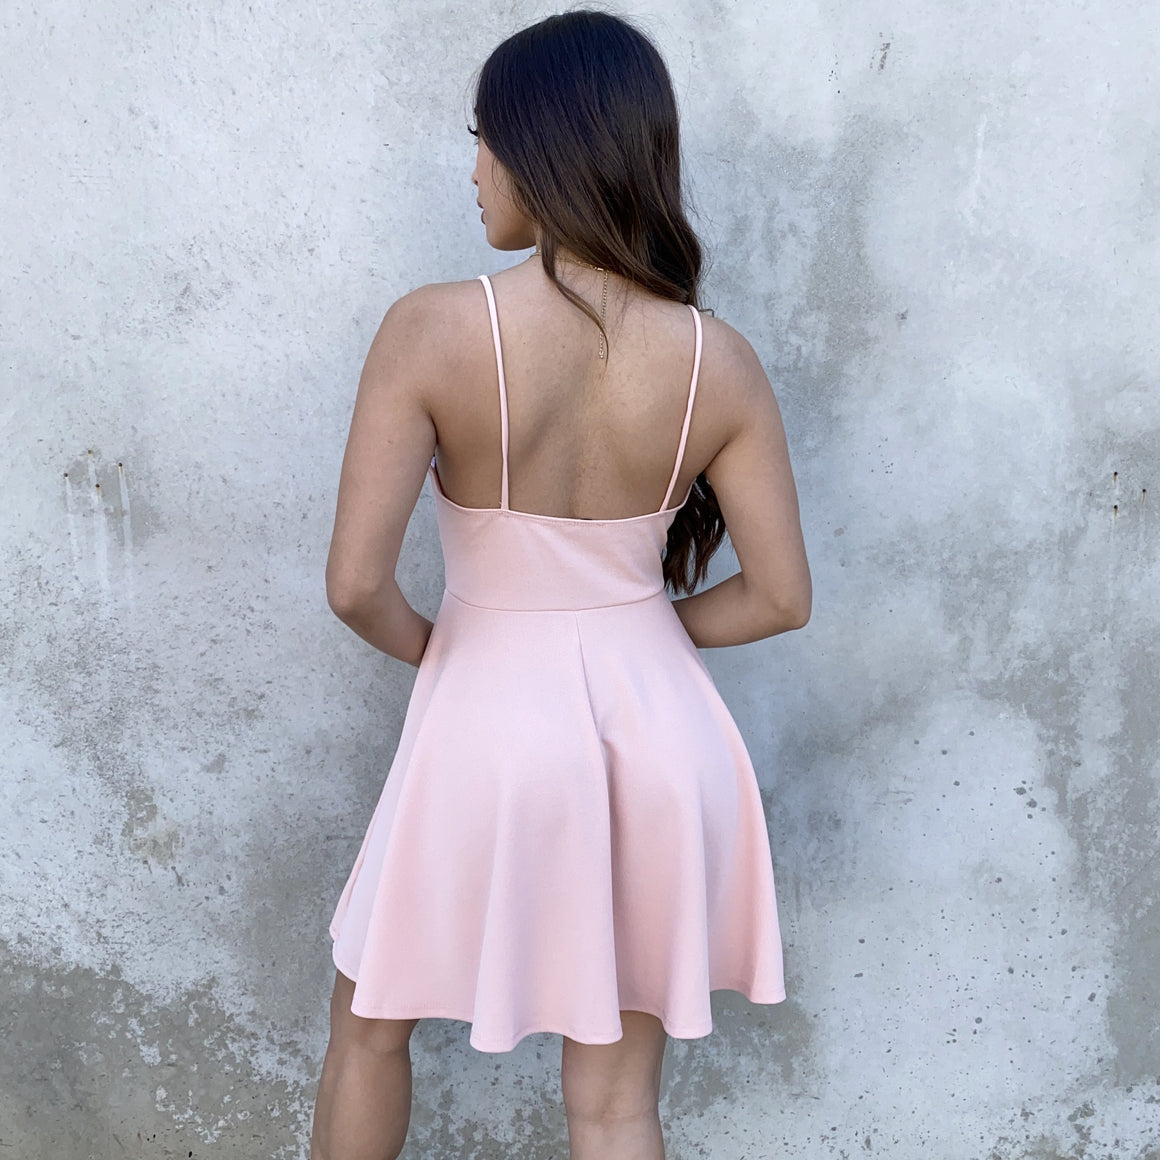 Swing In & Out Of Love Pink Skater Dress - Dainty Hooligan